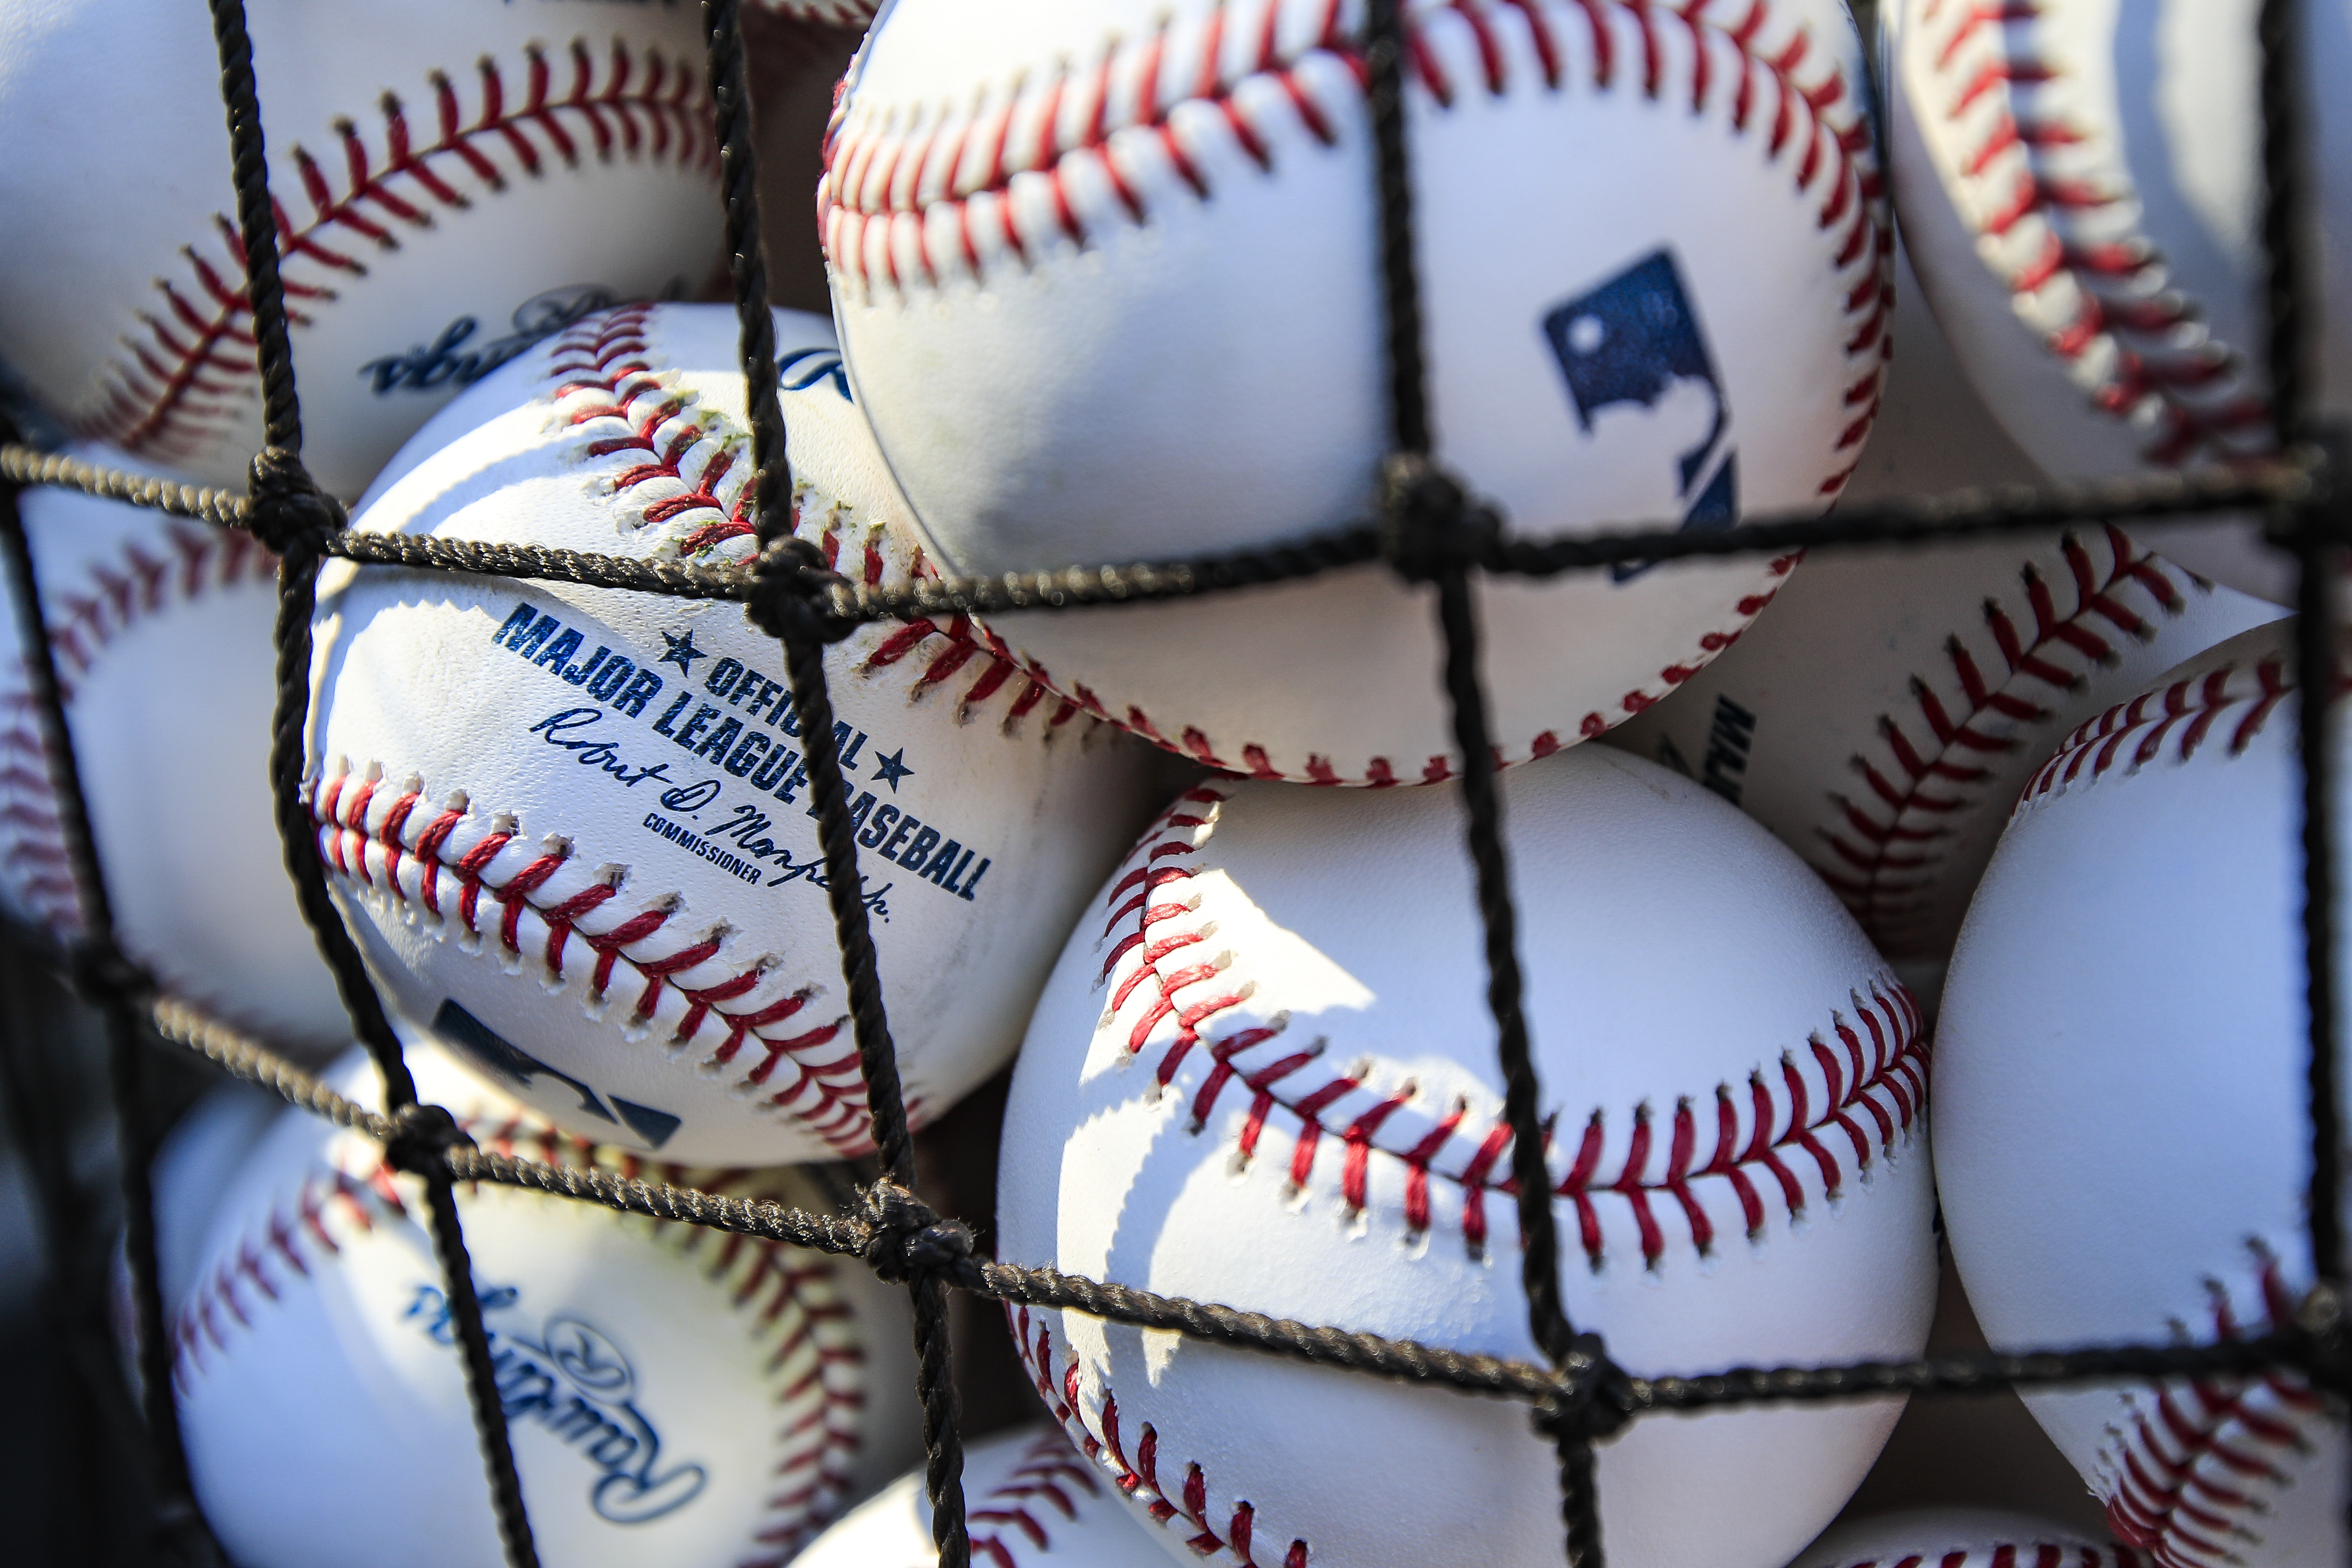 Baseballs on the field before the game between the Cleveland Indians and the Kansas City Royals at Kauffman Stadium on July 2, 2018 in Kansas City, Missouri.